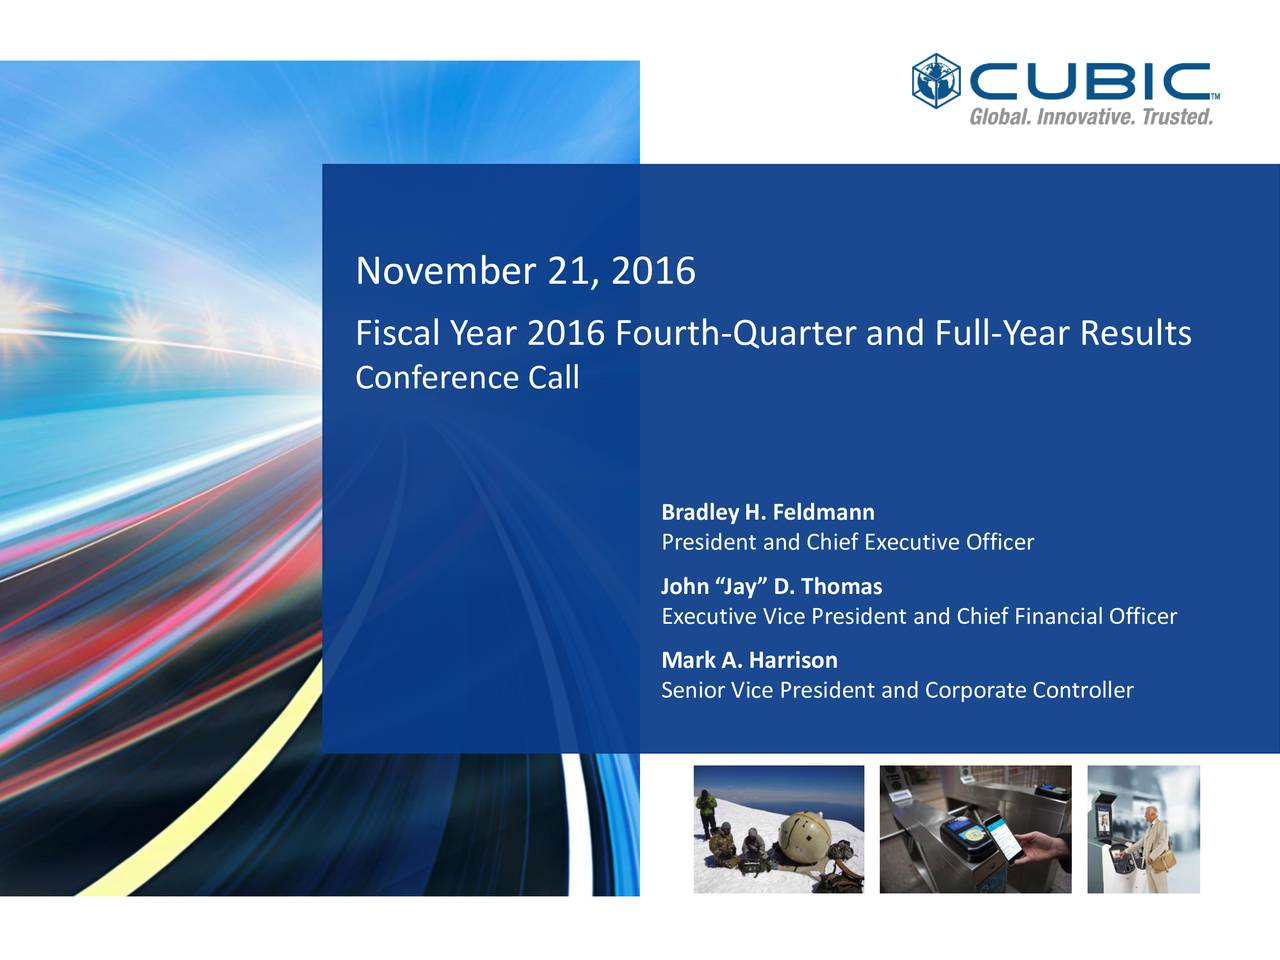 Fiscal Year 2016 Fourth-Quarter and Full-Year Results Conference Call Bradley H. Feldmann President and Chief Executive Officer John Jay D. Thomas Executive Vice President and Chief Financial Officer Mark A. Harrison Senior Vice President and Corporate Controller